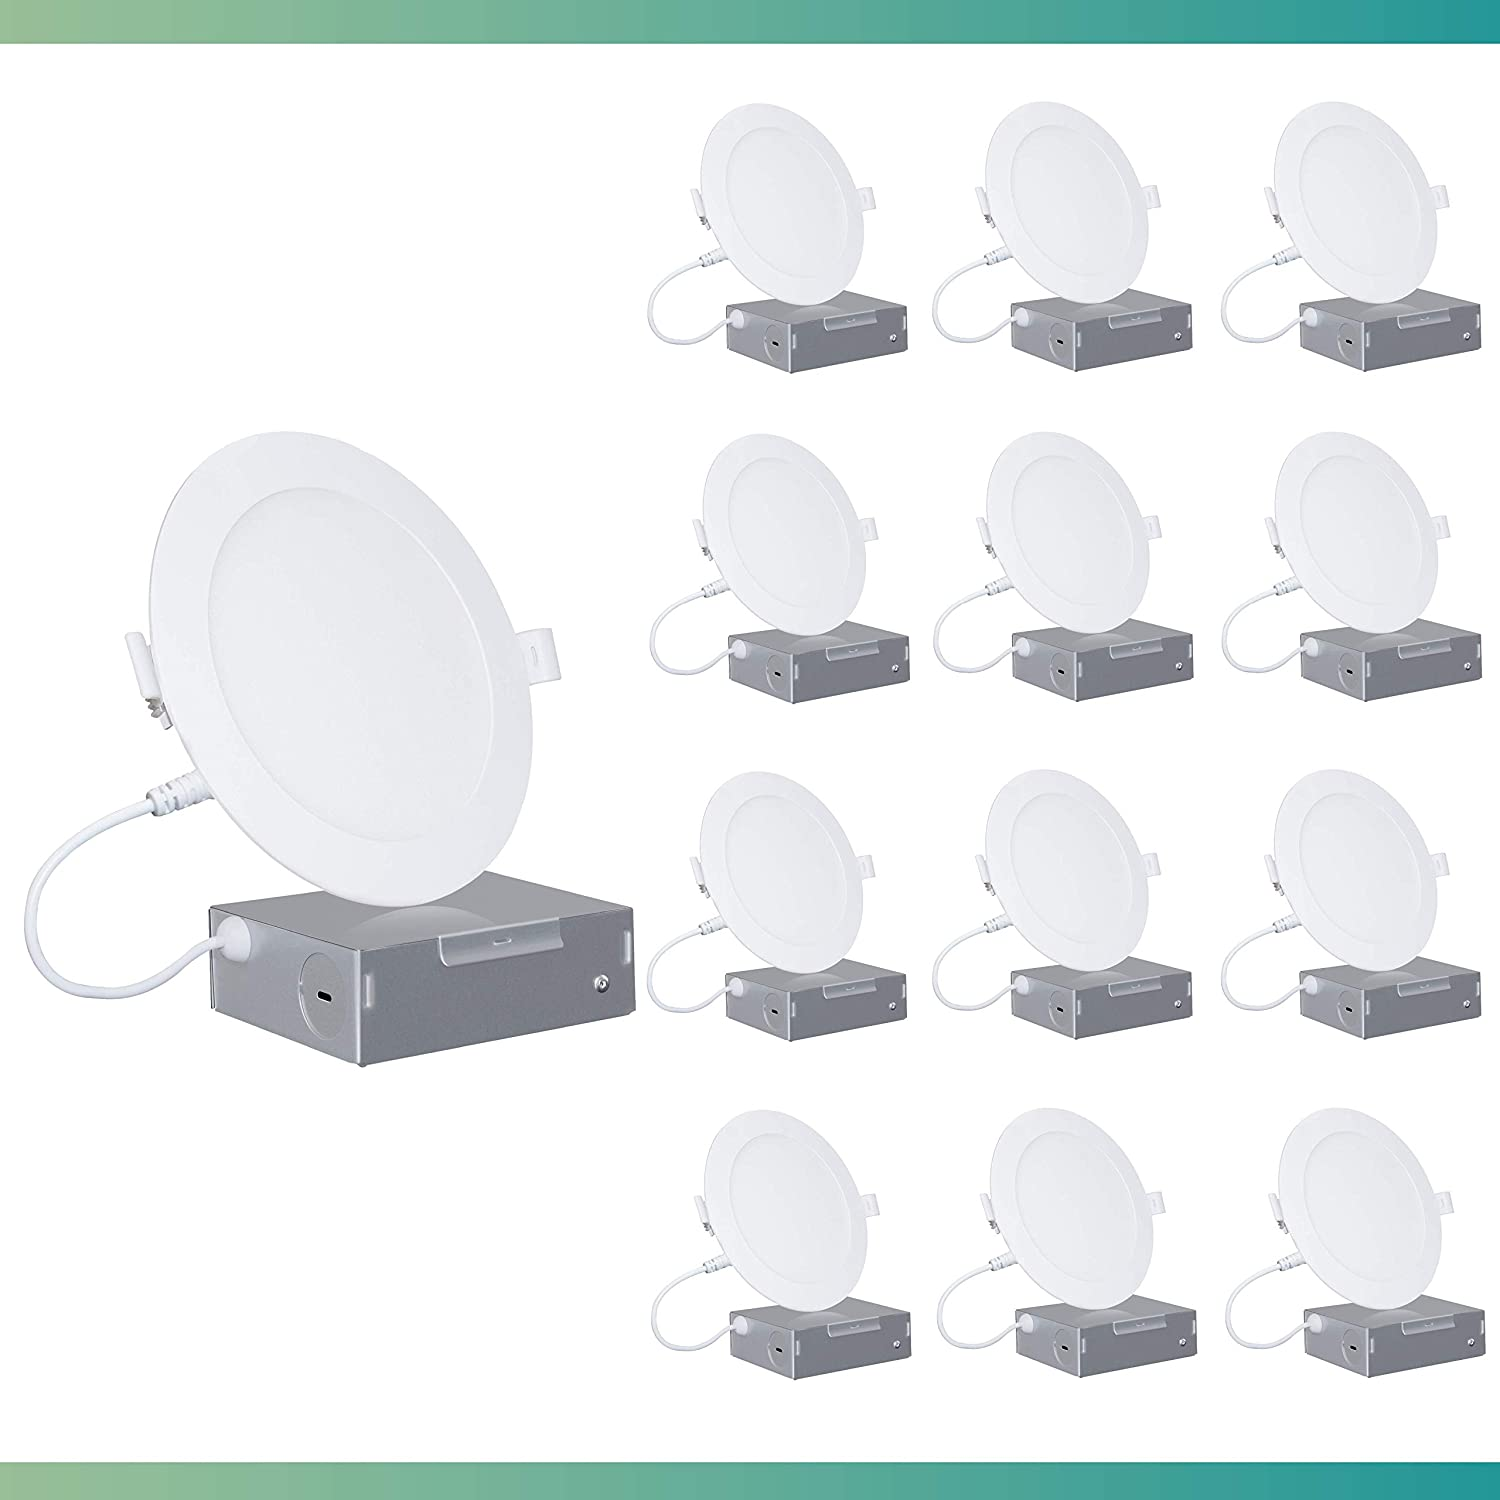 Infibrite 4 Inch Super special price 6000K 9W Ceiling LED 750LM Max 47% OFF Recessed Ultra-Thin